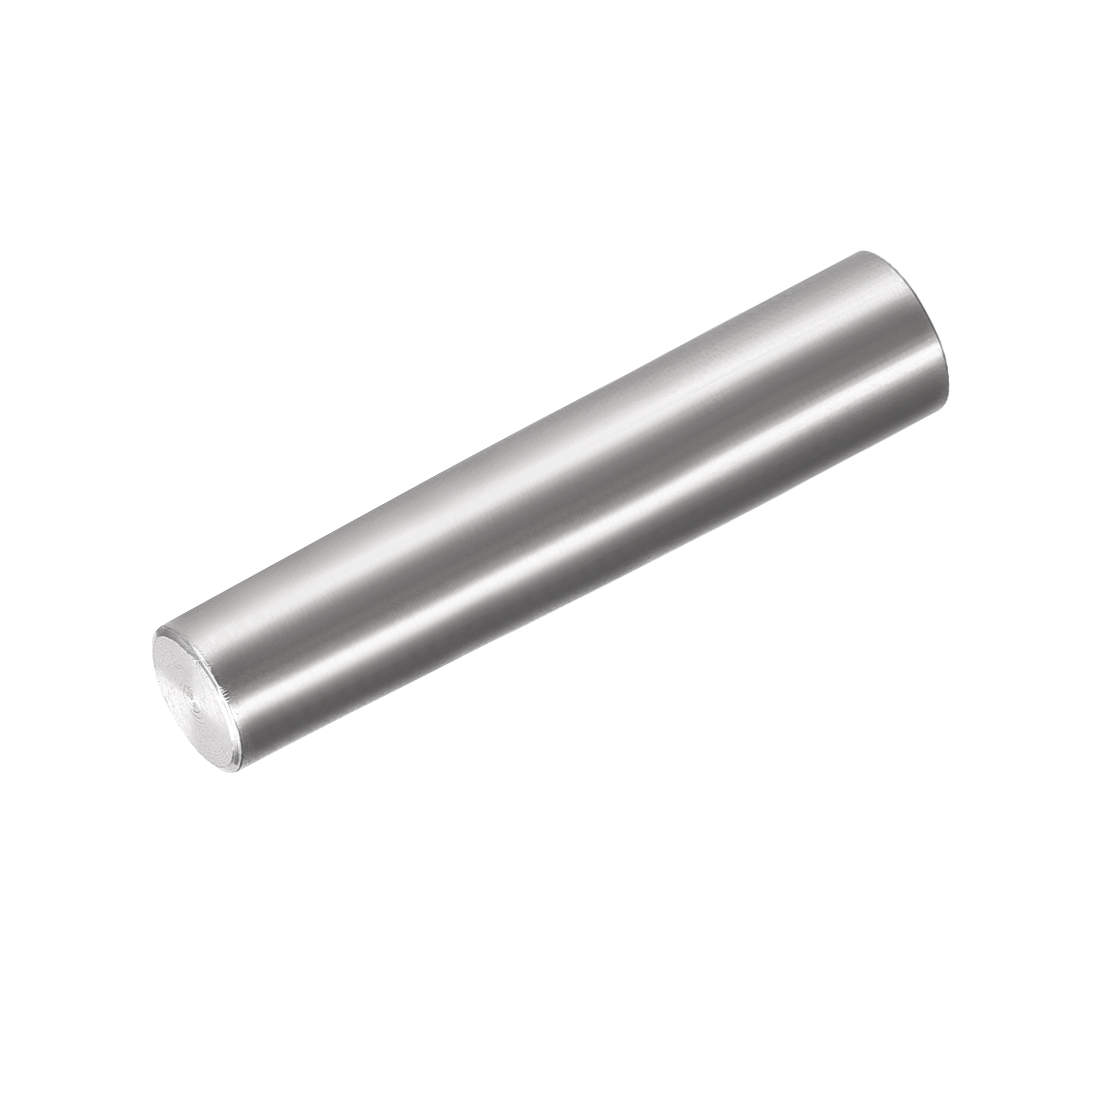 8mm x 40mm 1:50 Taper Pin 304 Stainless Steel Shelf Support Pin Fasten Elements